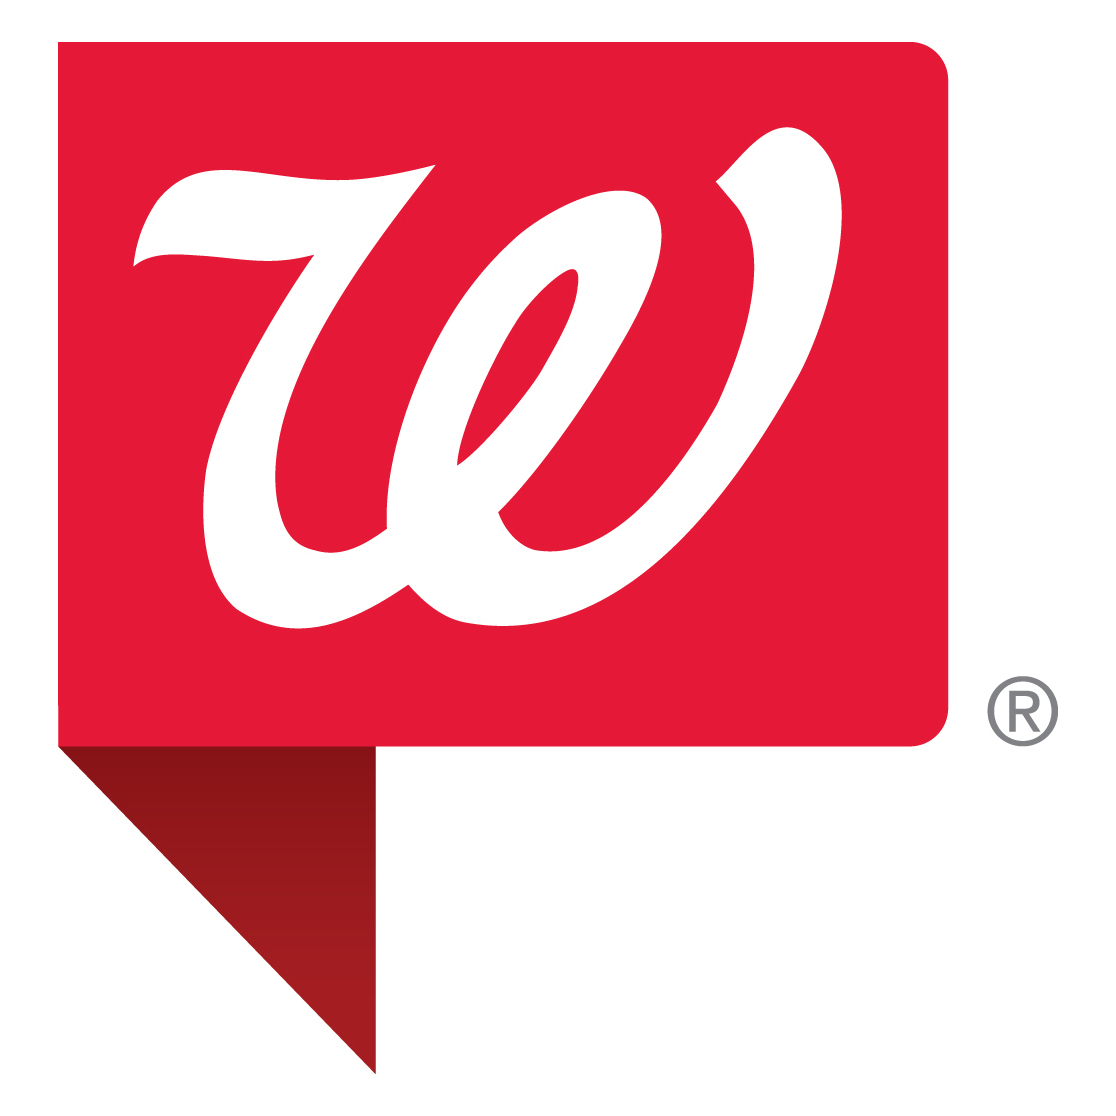 Walgreens - Hempstead, NY - Pharmacist